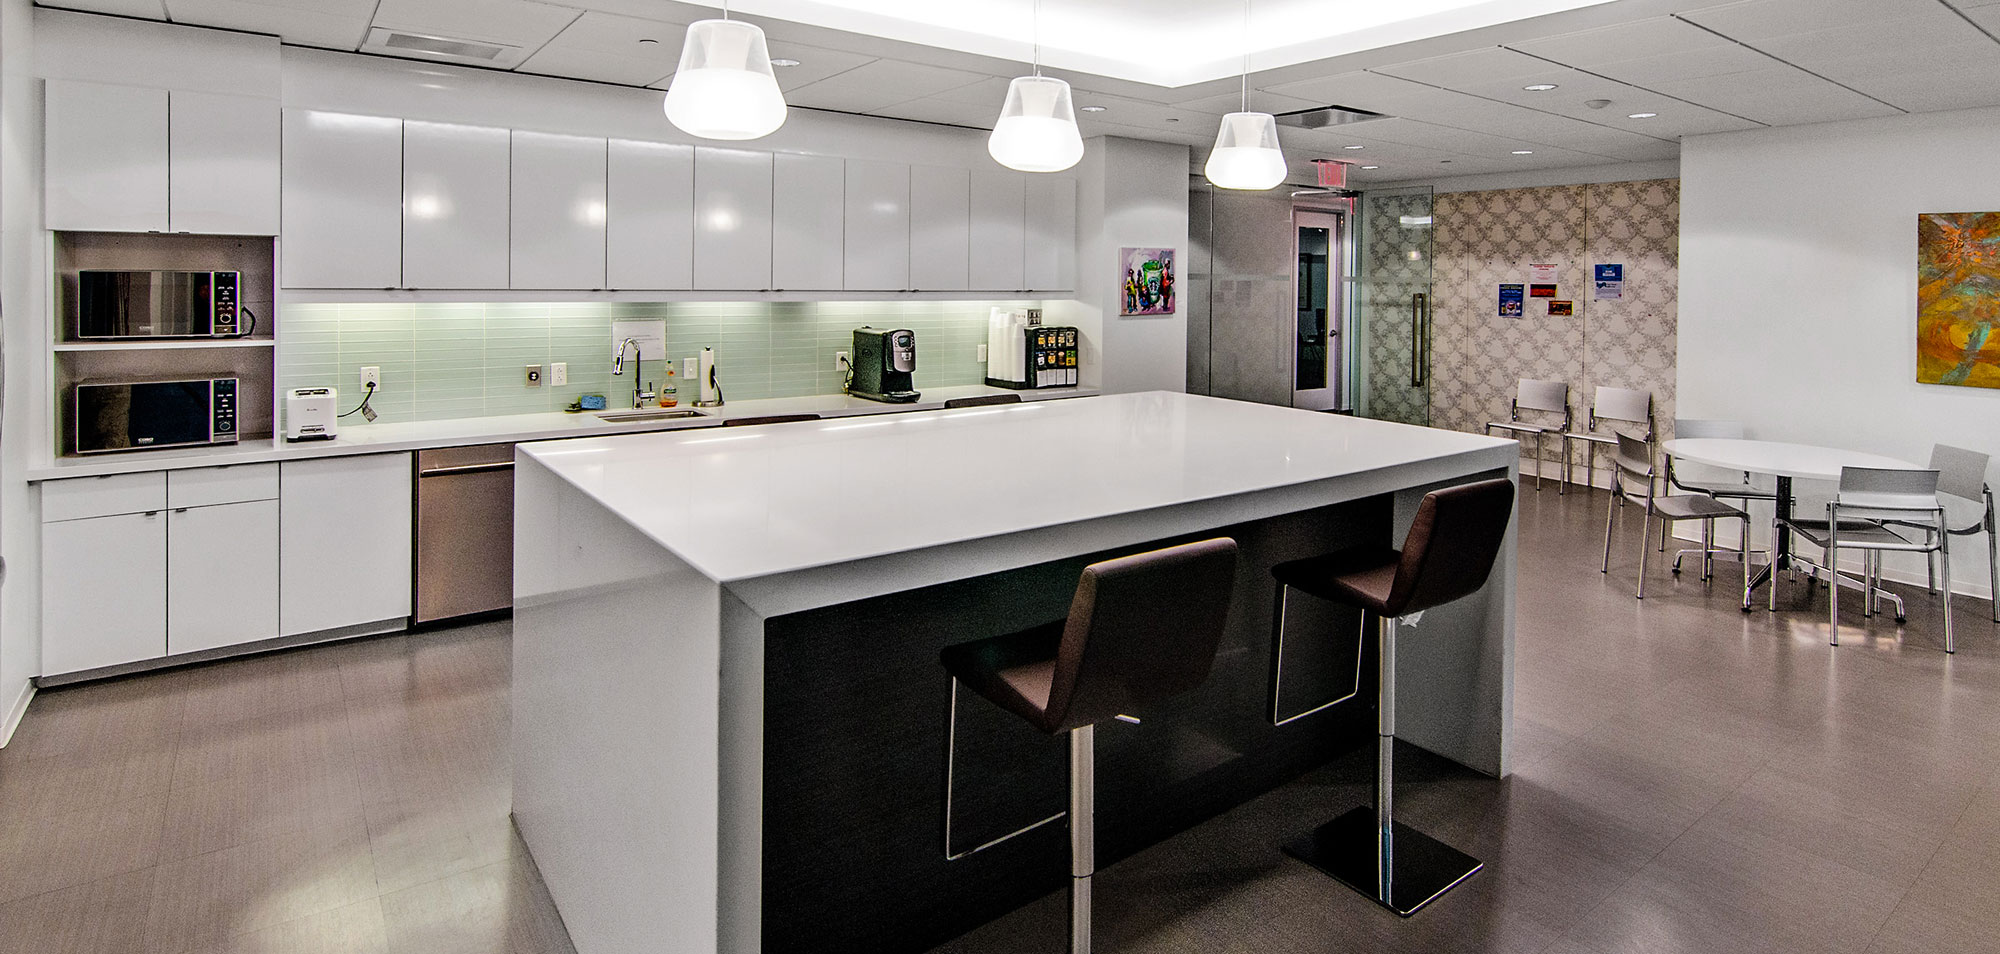 downtown-lounge-cafe-by-training-room.jpg